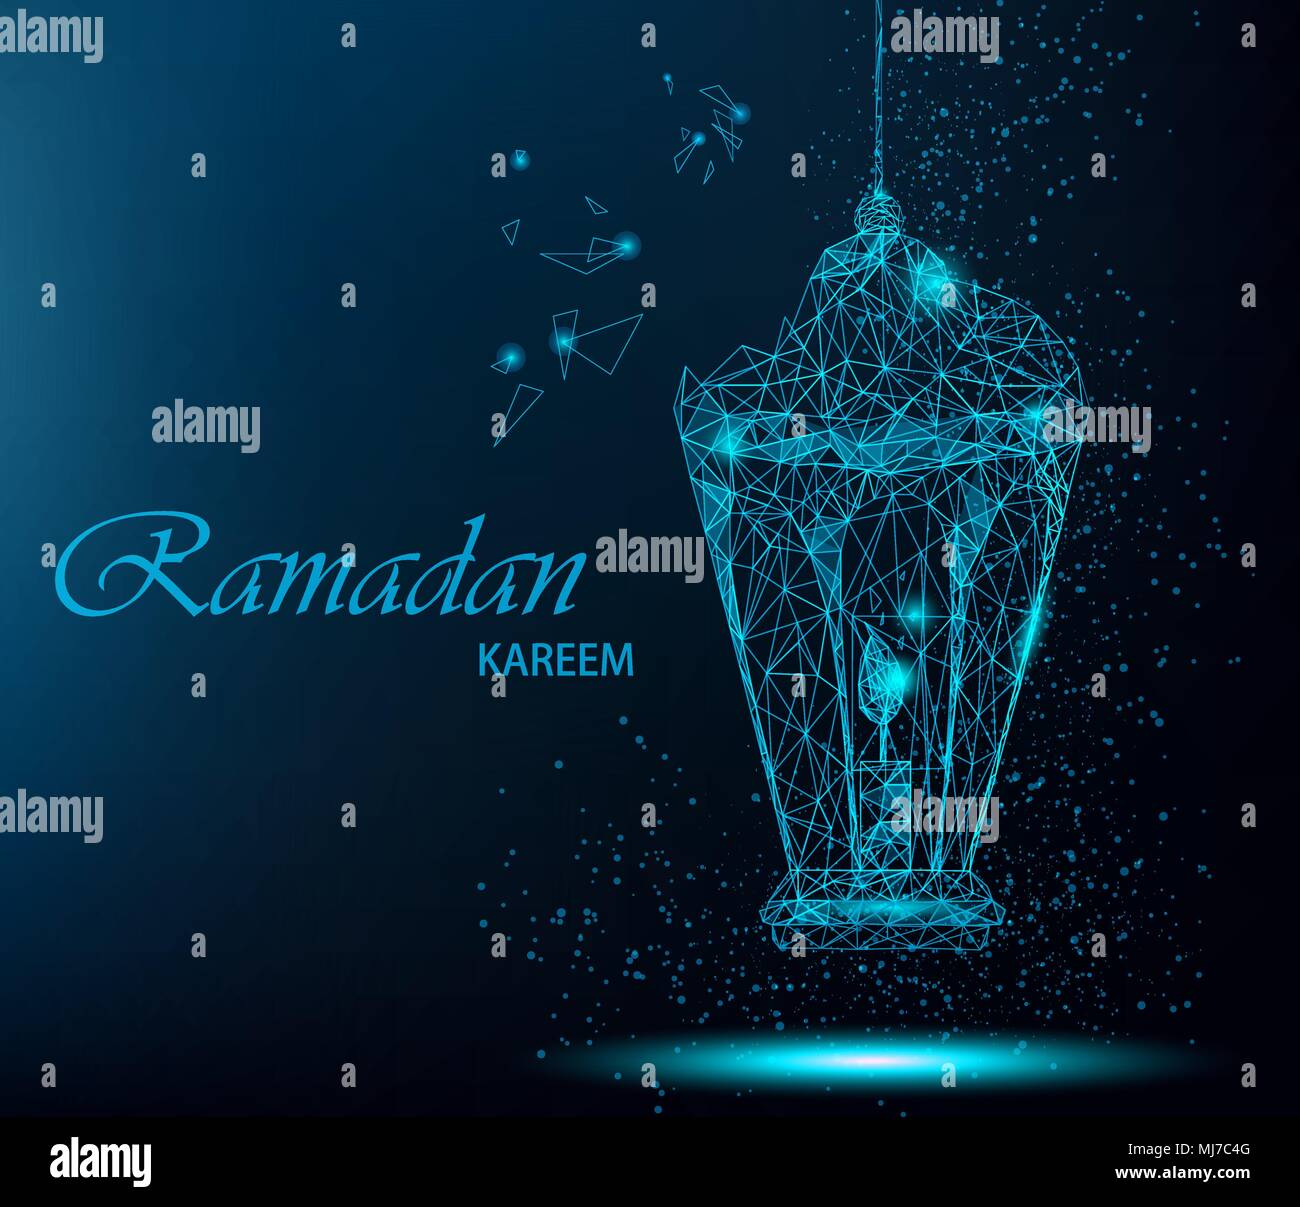 Ramadan kareem beautiful greeting card with traditional arabic ramadan kareem beautiful greeting card with traditional arabic lantern polygonal art on blue background greeting card or invitation usable for eid m4hsunfo